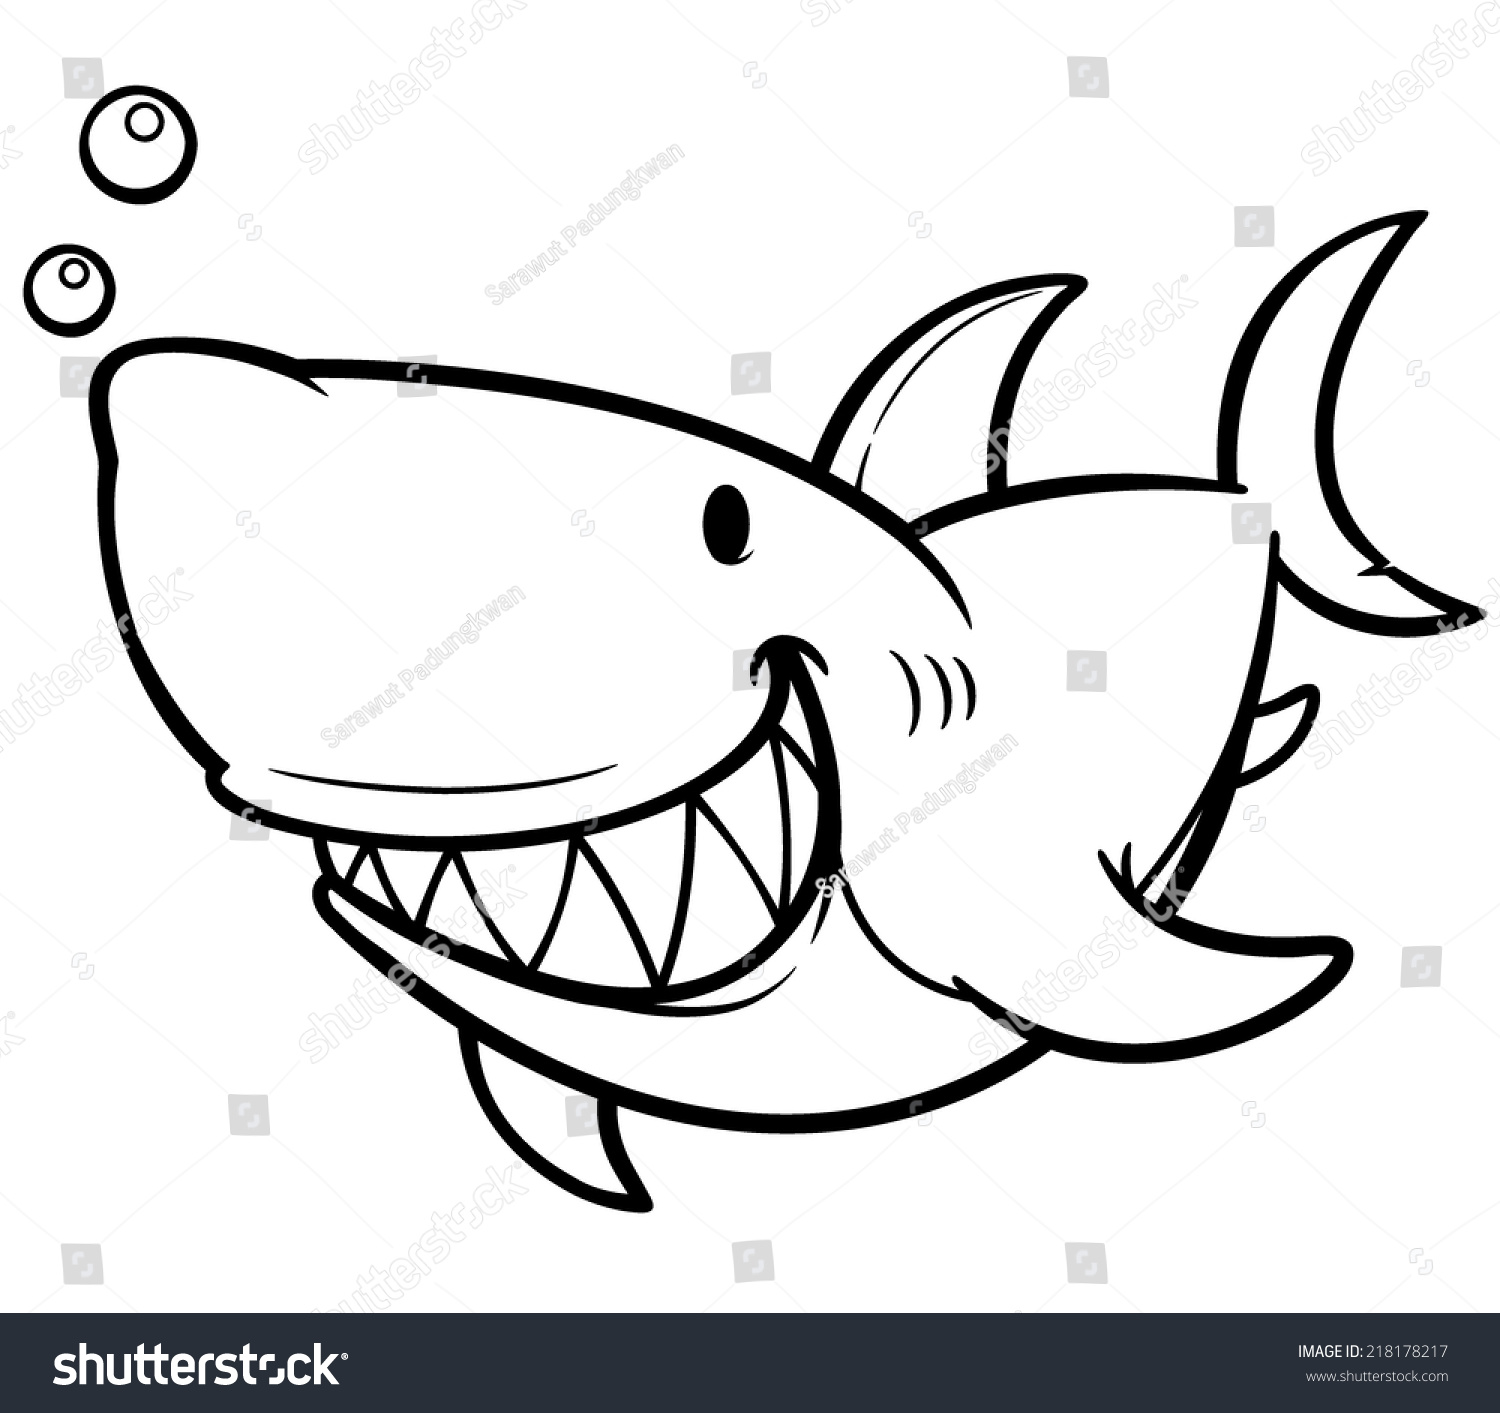 vector illustration of cartoon shark coloring book - Shark Coloring Book